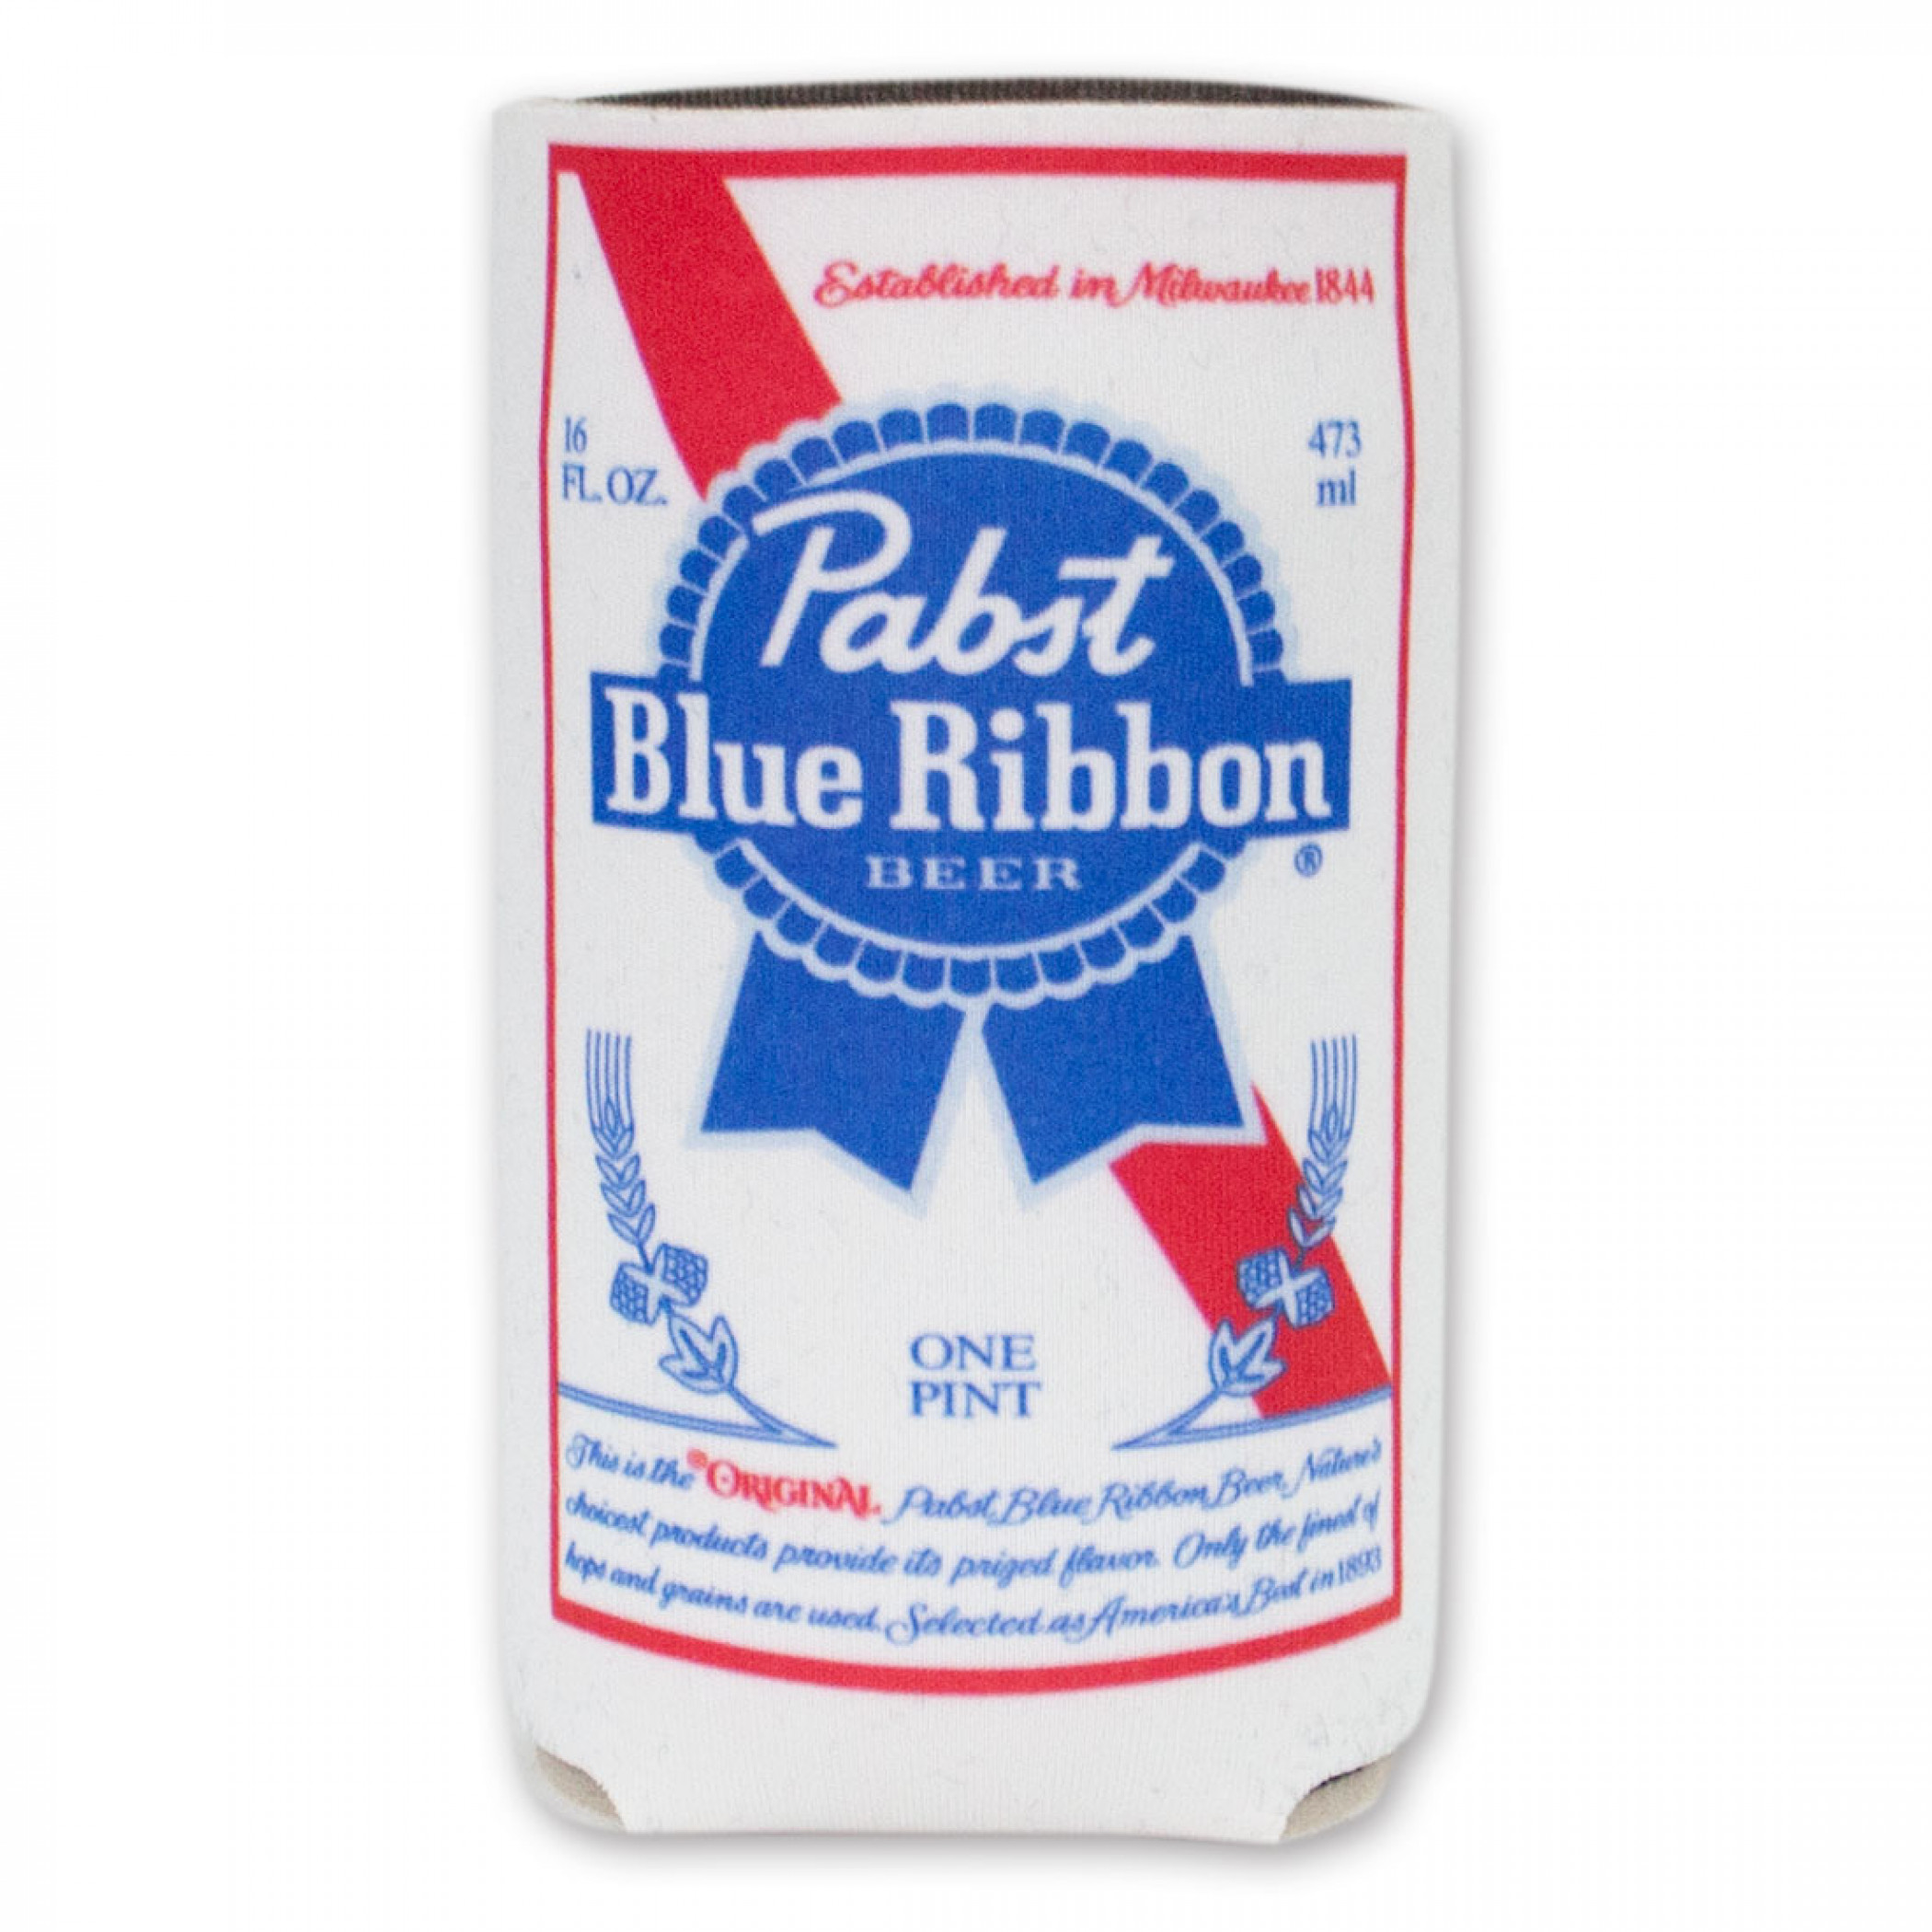 Pabst Blue Ribbon 16 Oz Beer Can Cooler